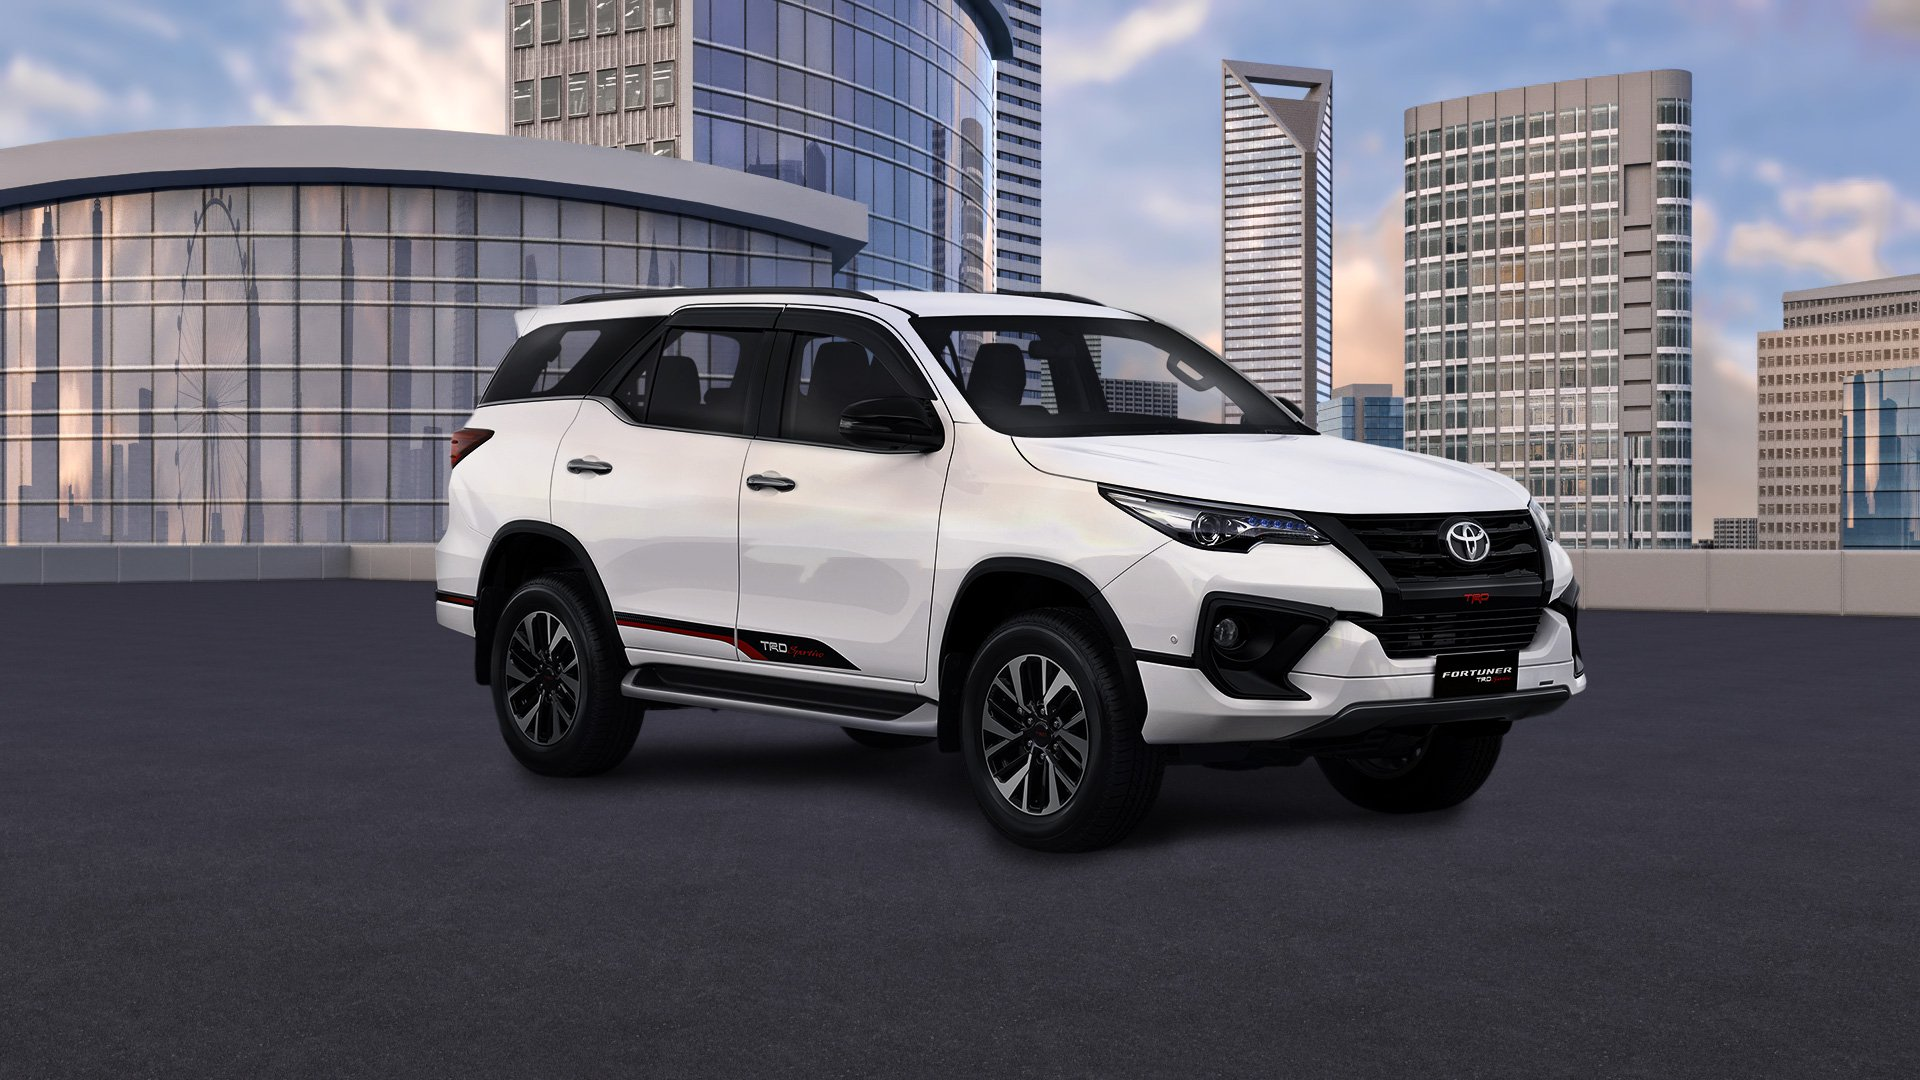 new agya trd 2018 velg racing grand avanza promo all fortuner diskon up to 45 juta  dealer